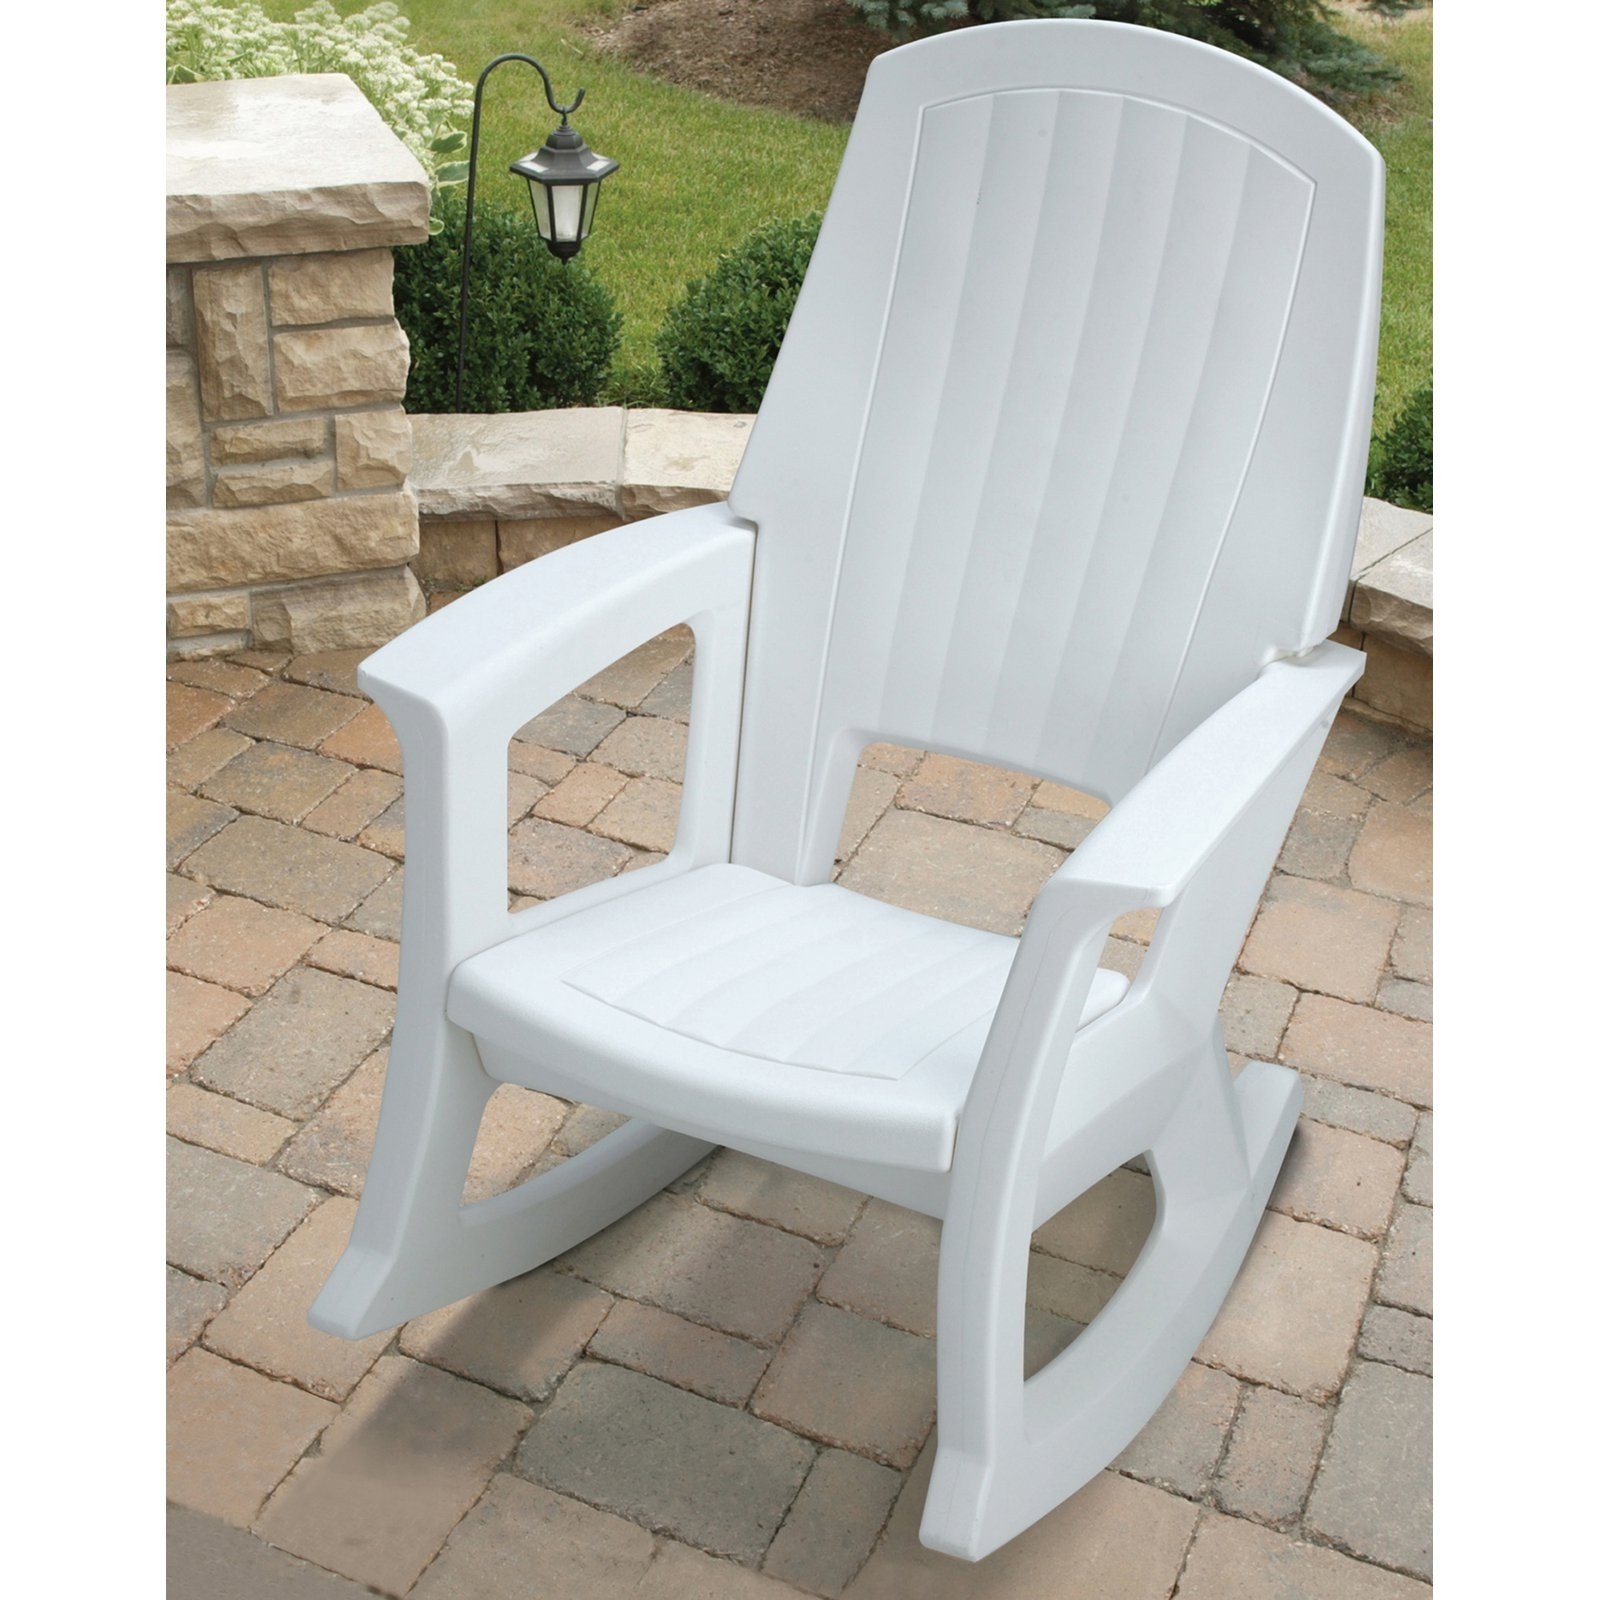 Semco Recycled Plastic Rocking Chair – Walmart Throughout Outdoor Rocking Chairs With Table (View 11 of 15)